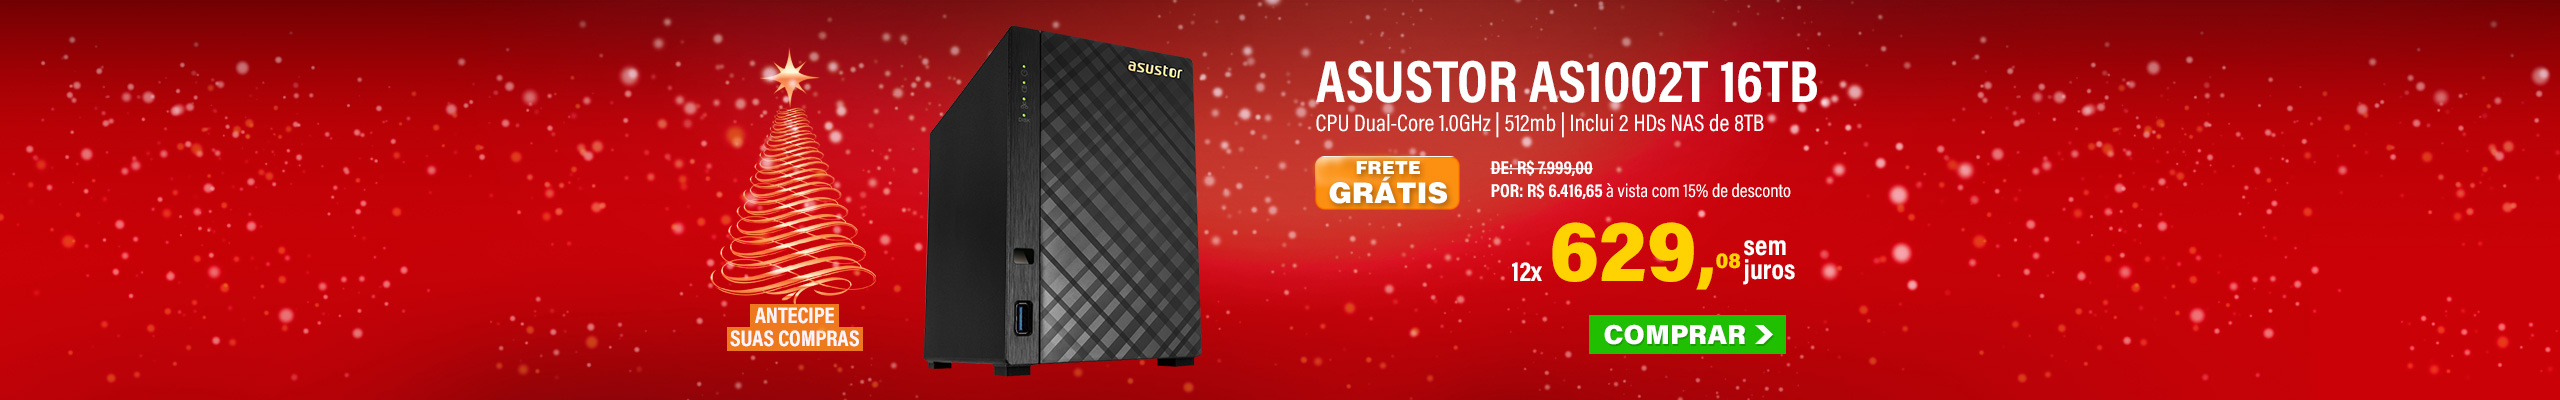 NAS ASUSTOR | AS1002T V2 | 16TB | CPU DUAL-CORE 1.6GHZ | 512MB RAM | INCLUI 2 HDS NAS DE 8TB 7200 RPM | MPN: AS1002T16000